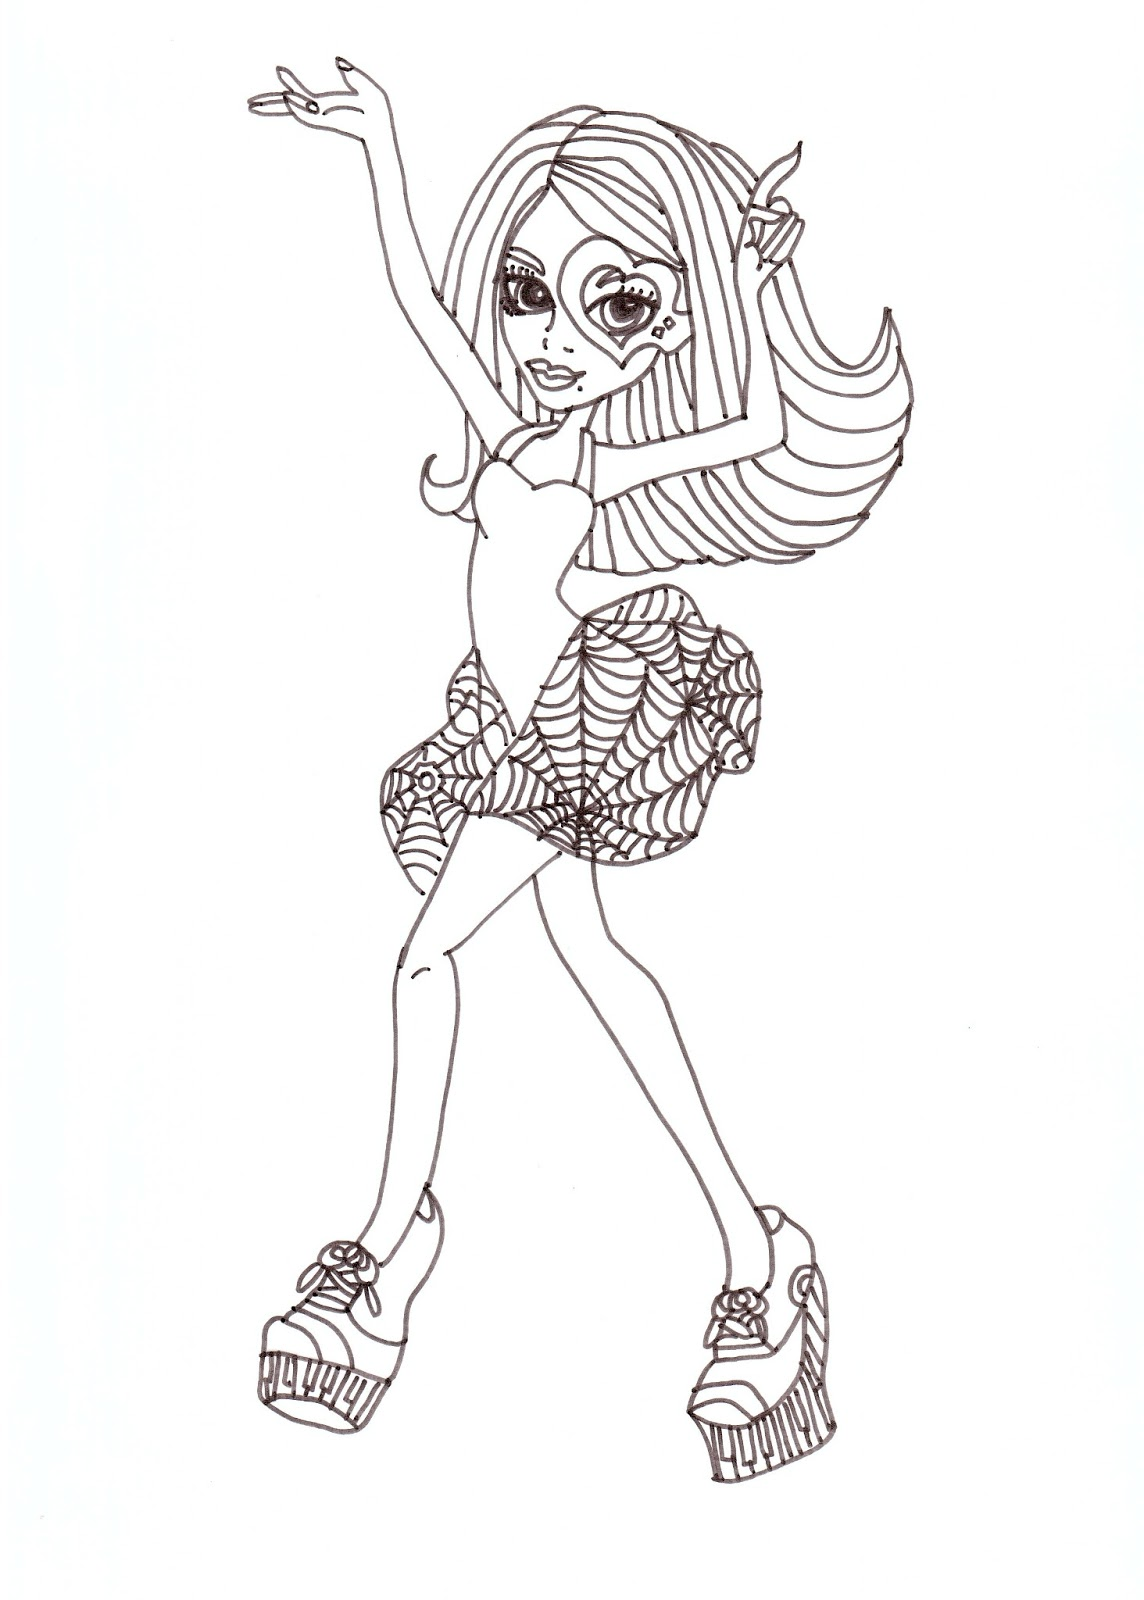 Free printable monster high coloring pages operetta dance for Operetta monster high coloring pages